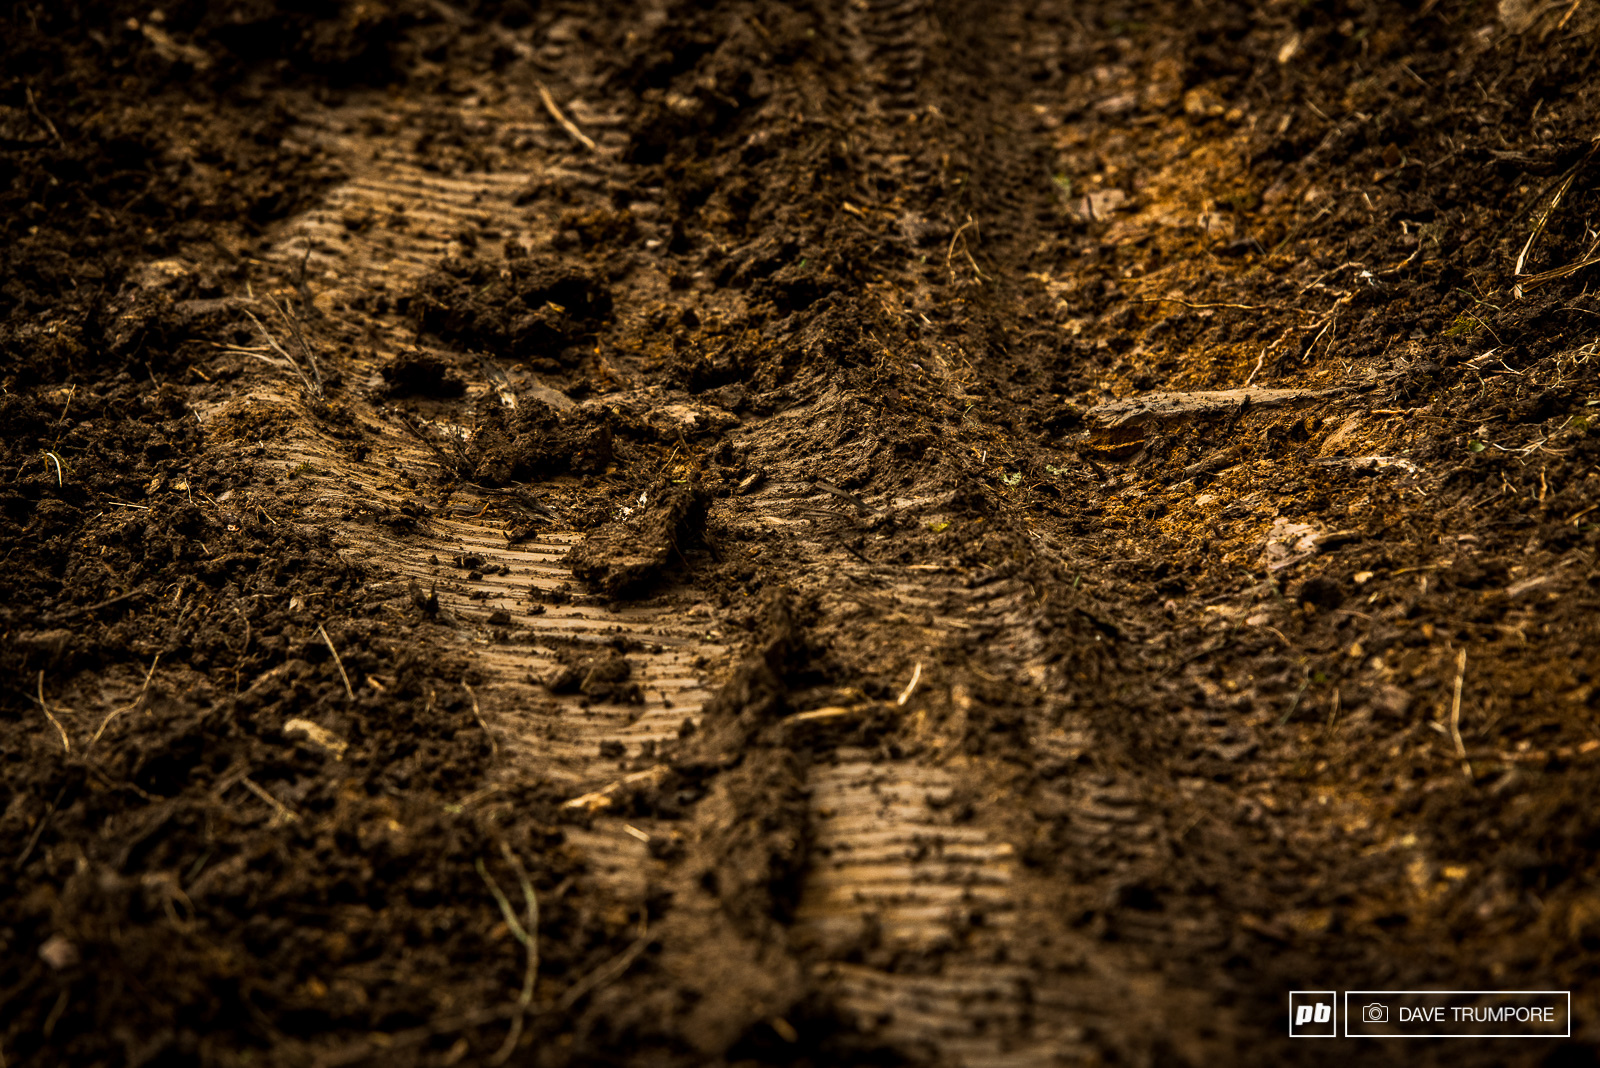 A day of rain turned the dusty trails to golden slime come race time.